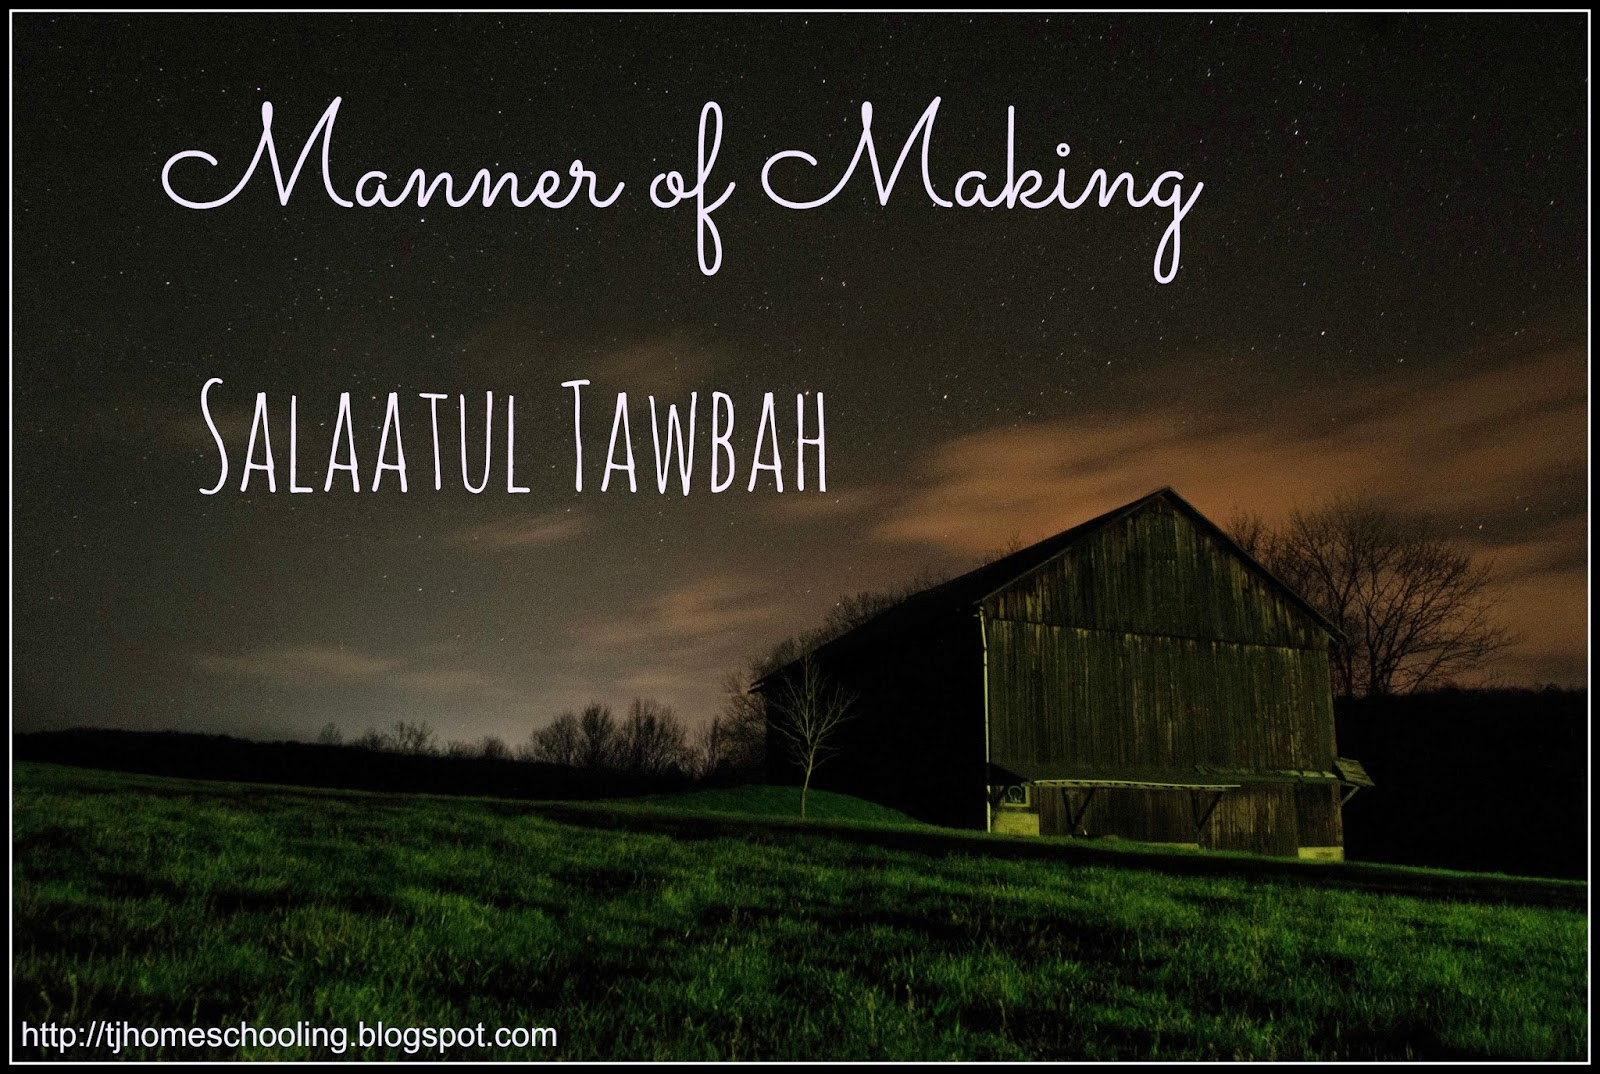 Manner of Making Salaatul Tawbah